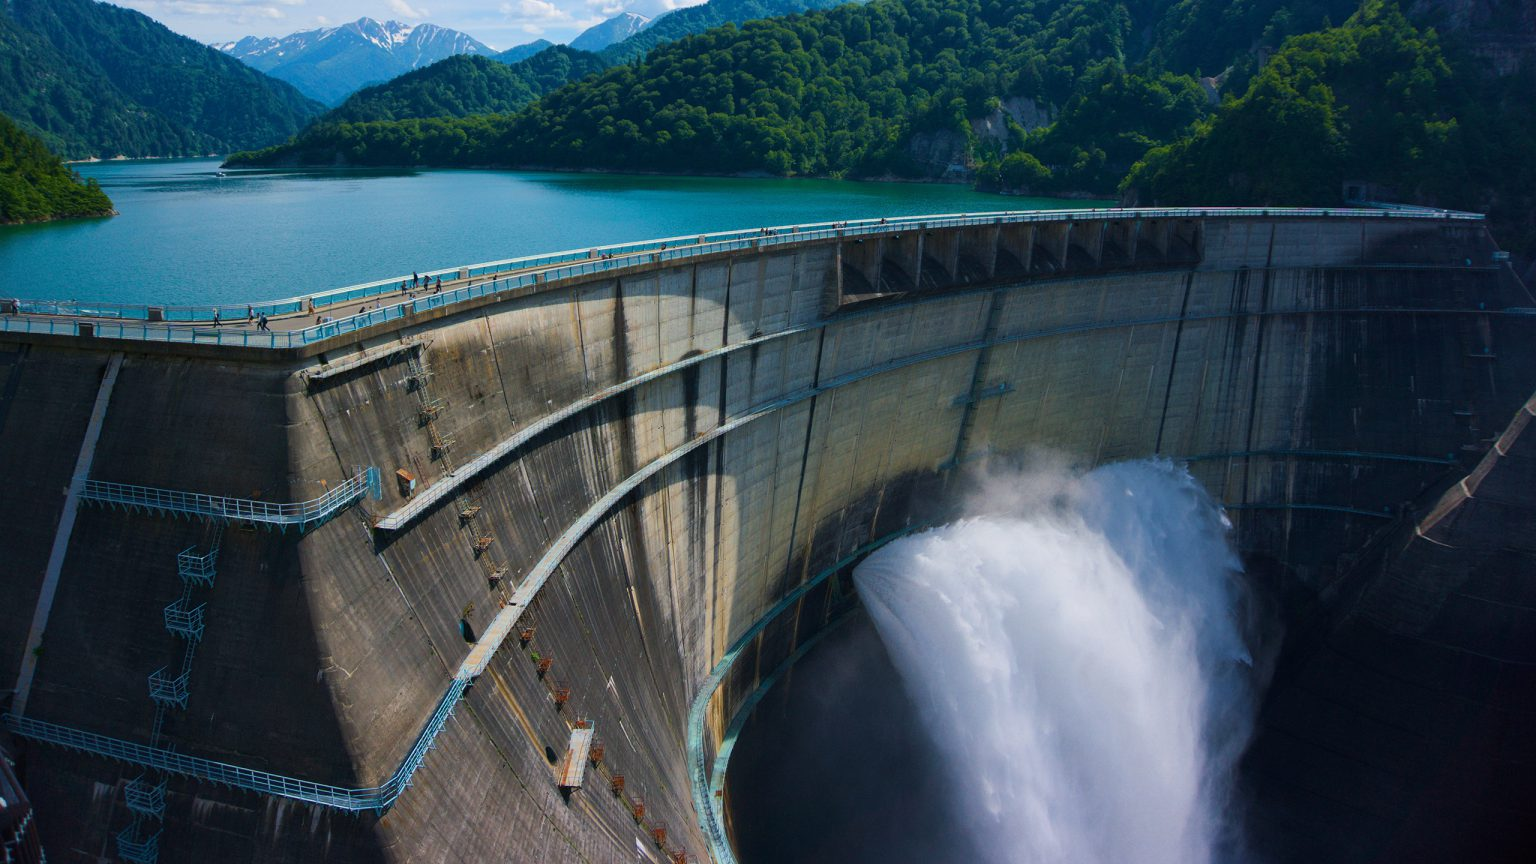 Innovations in hydropower and hydraulic engineering